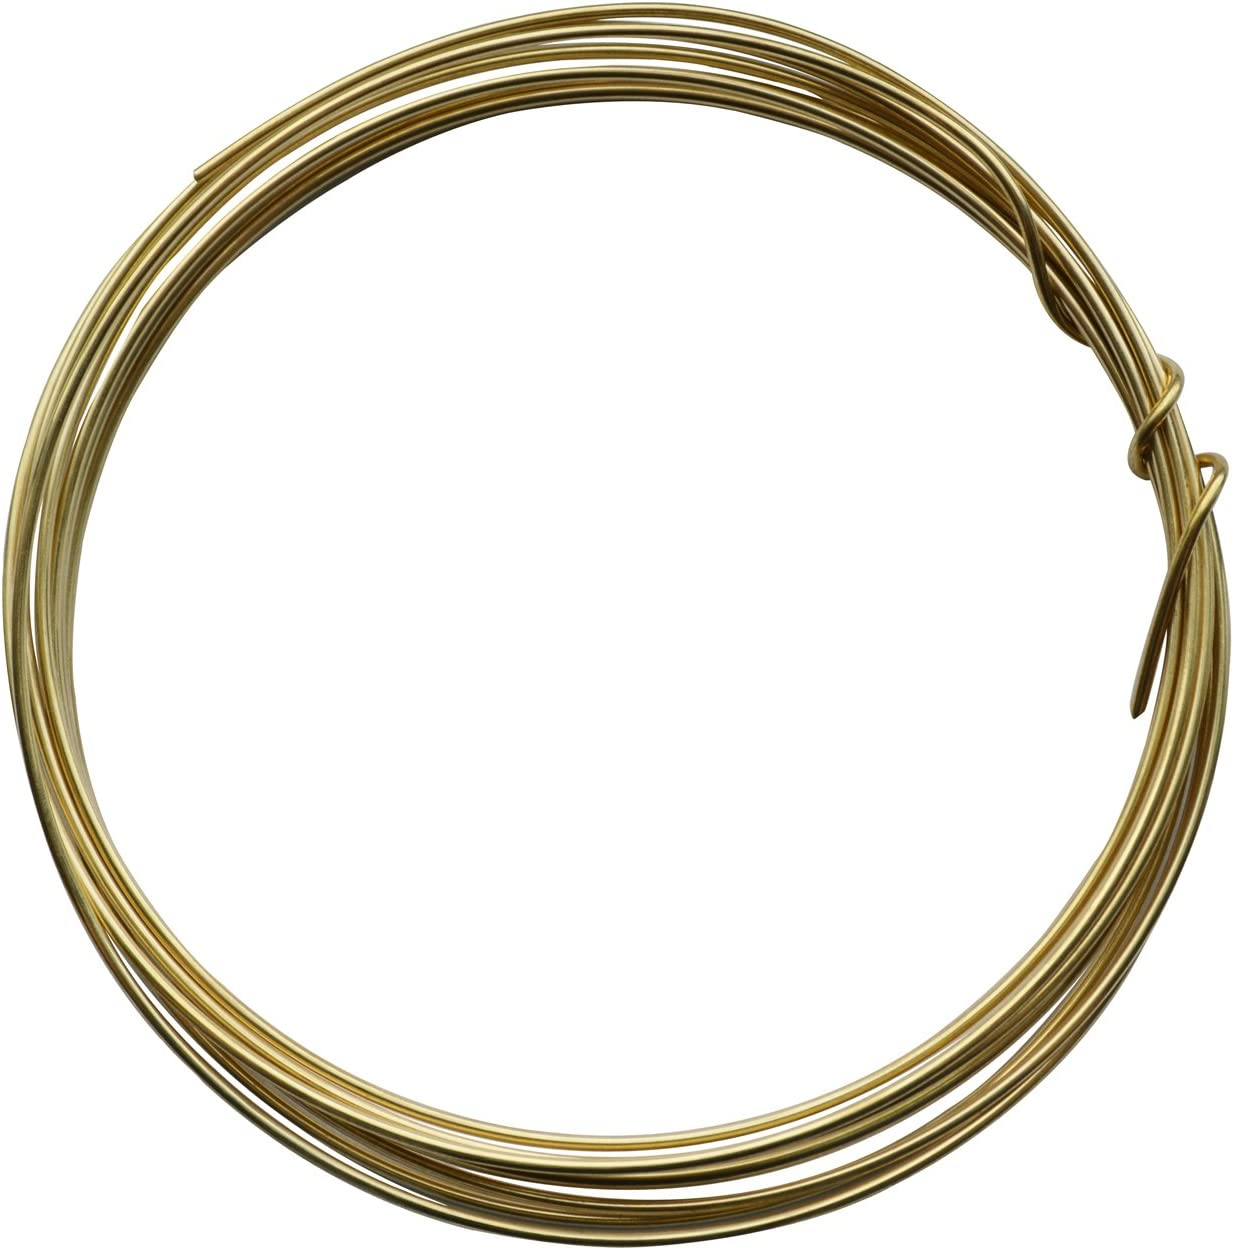 service 10' Round Dead Sales for sale Soft Red Brass Wire Jewelry Gauge Craft 14 Making